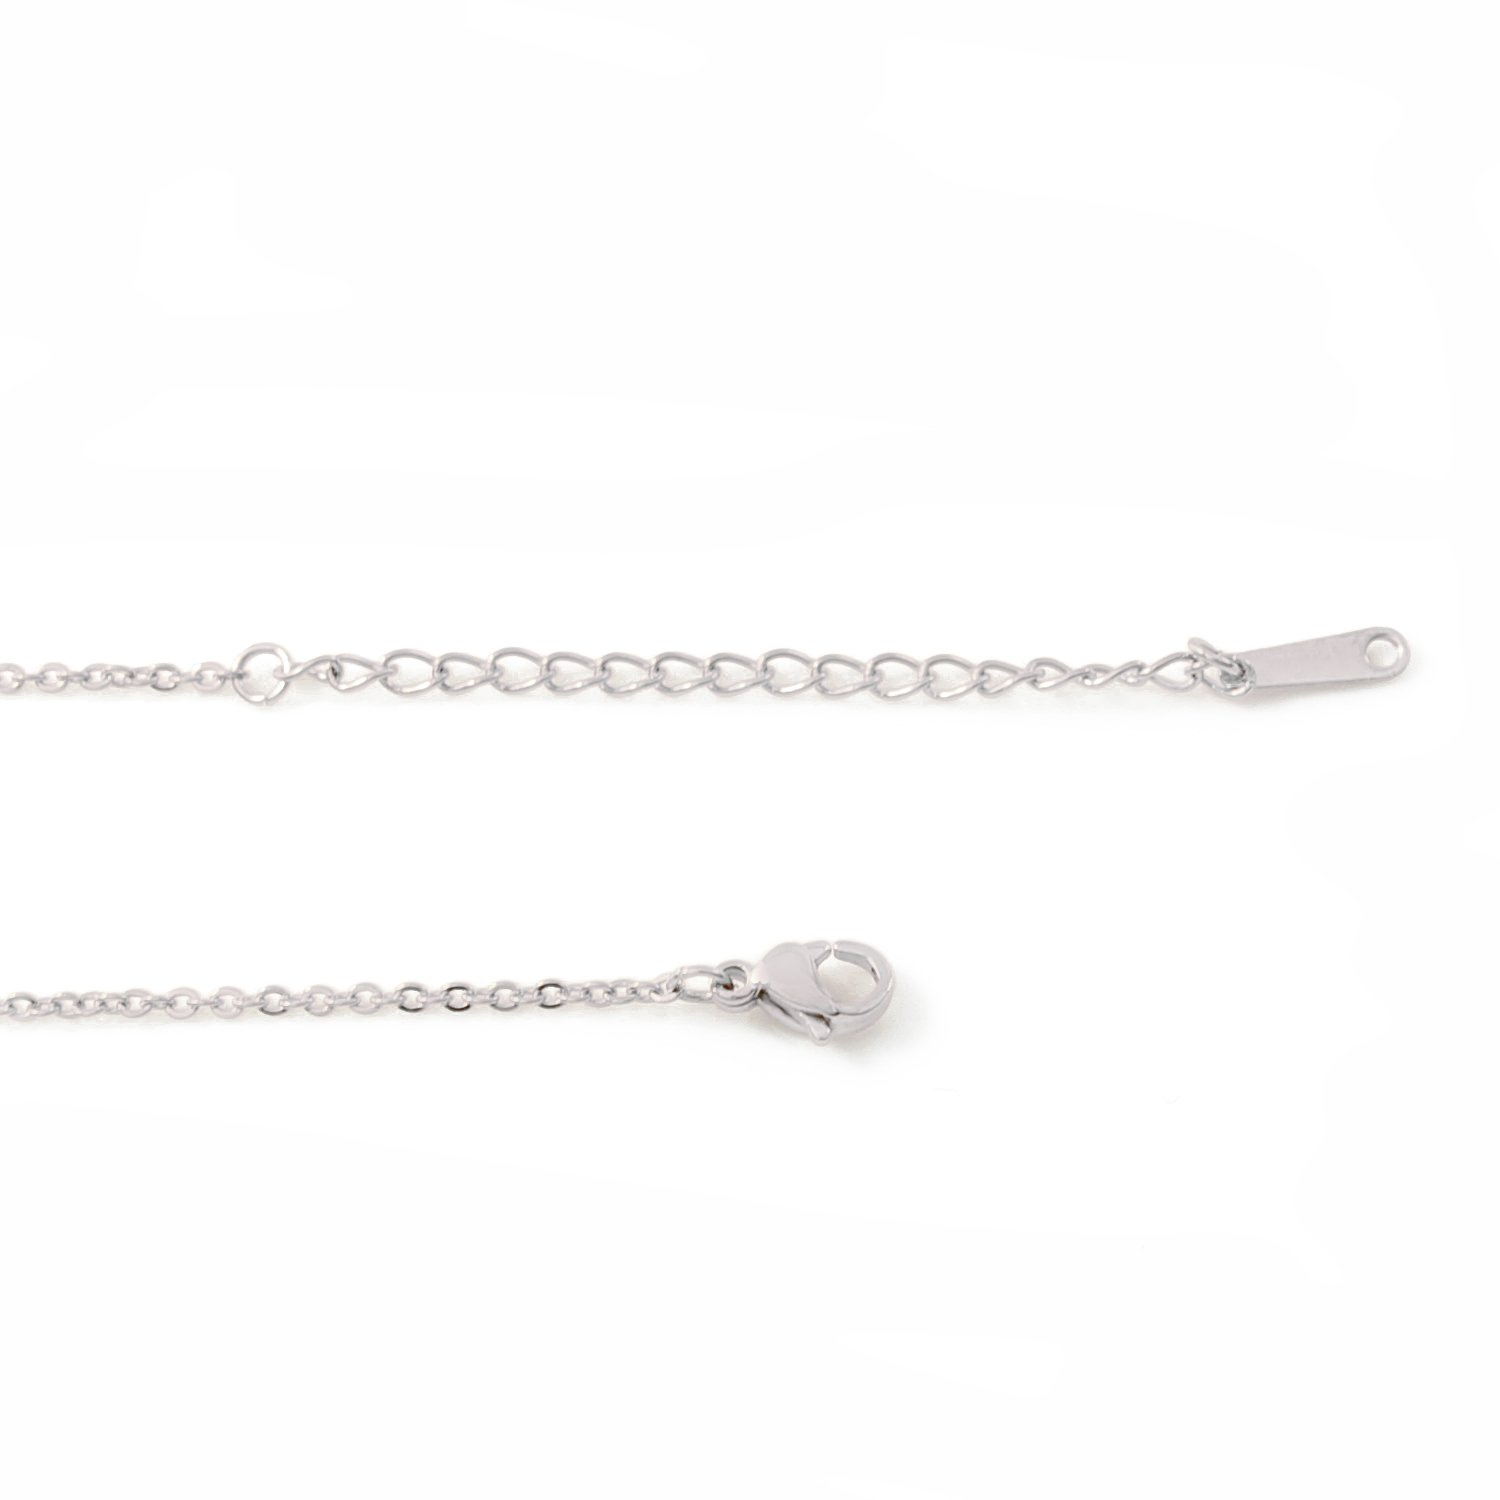 Zacria Italic Name Necklace Arianna Silver Tone